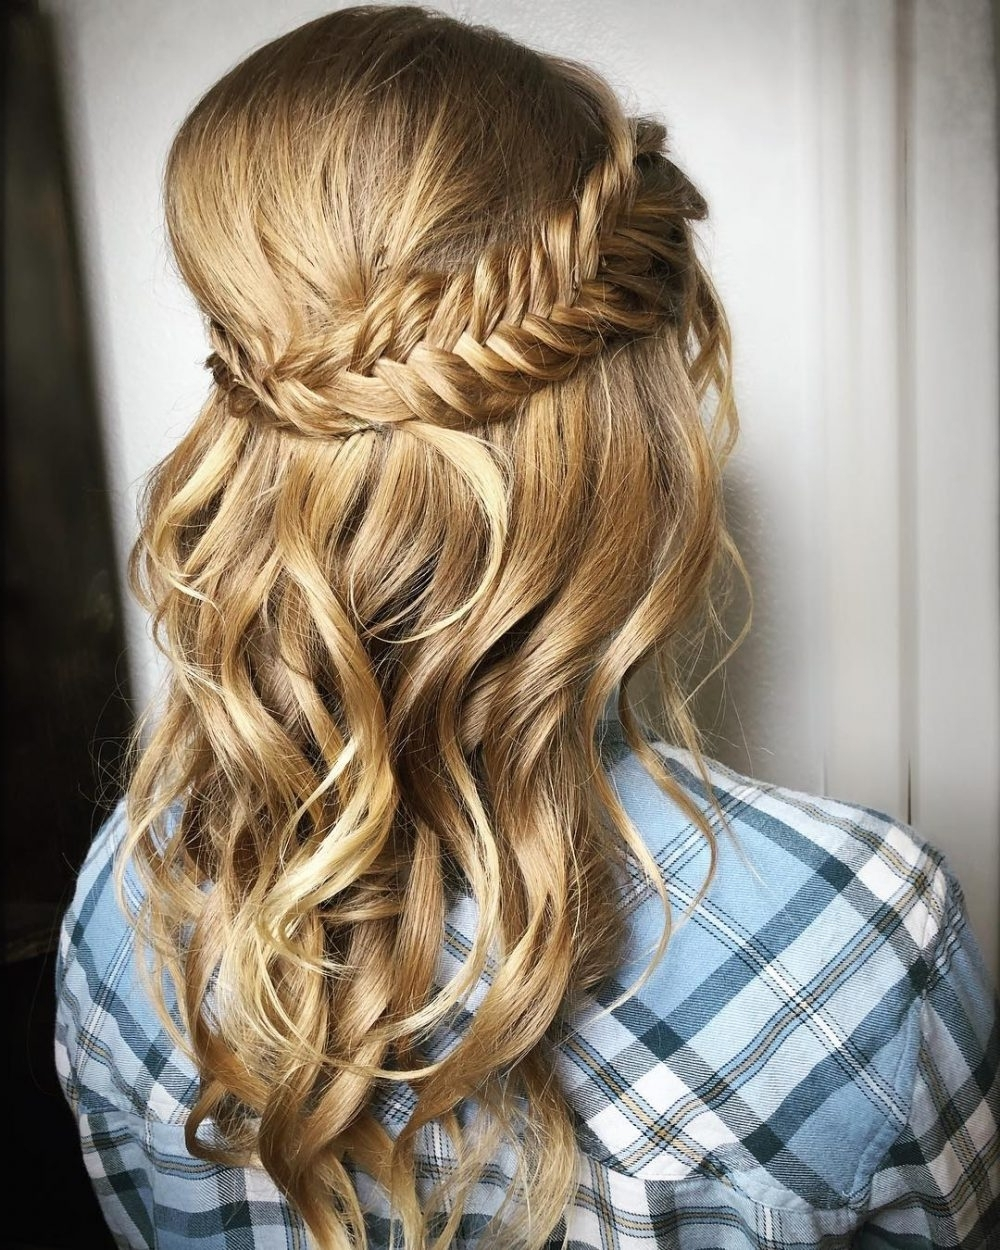 Half Up Half Down Prom Hairstyles – Pictures And How To's With Latest Soft Half Up Ponytail Hairstyles (View 11 of 20)